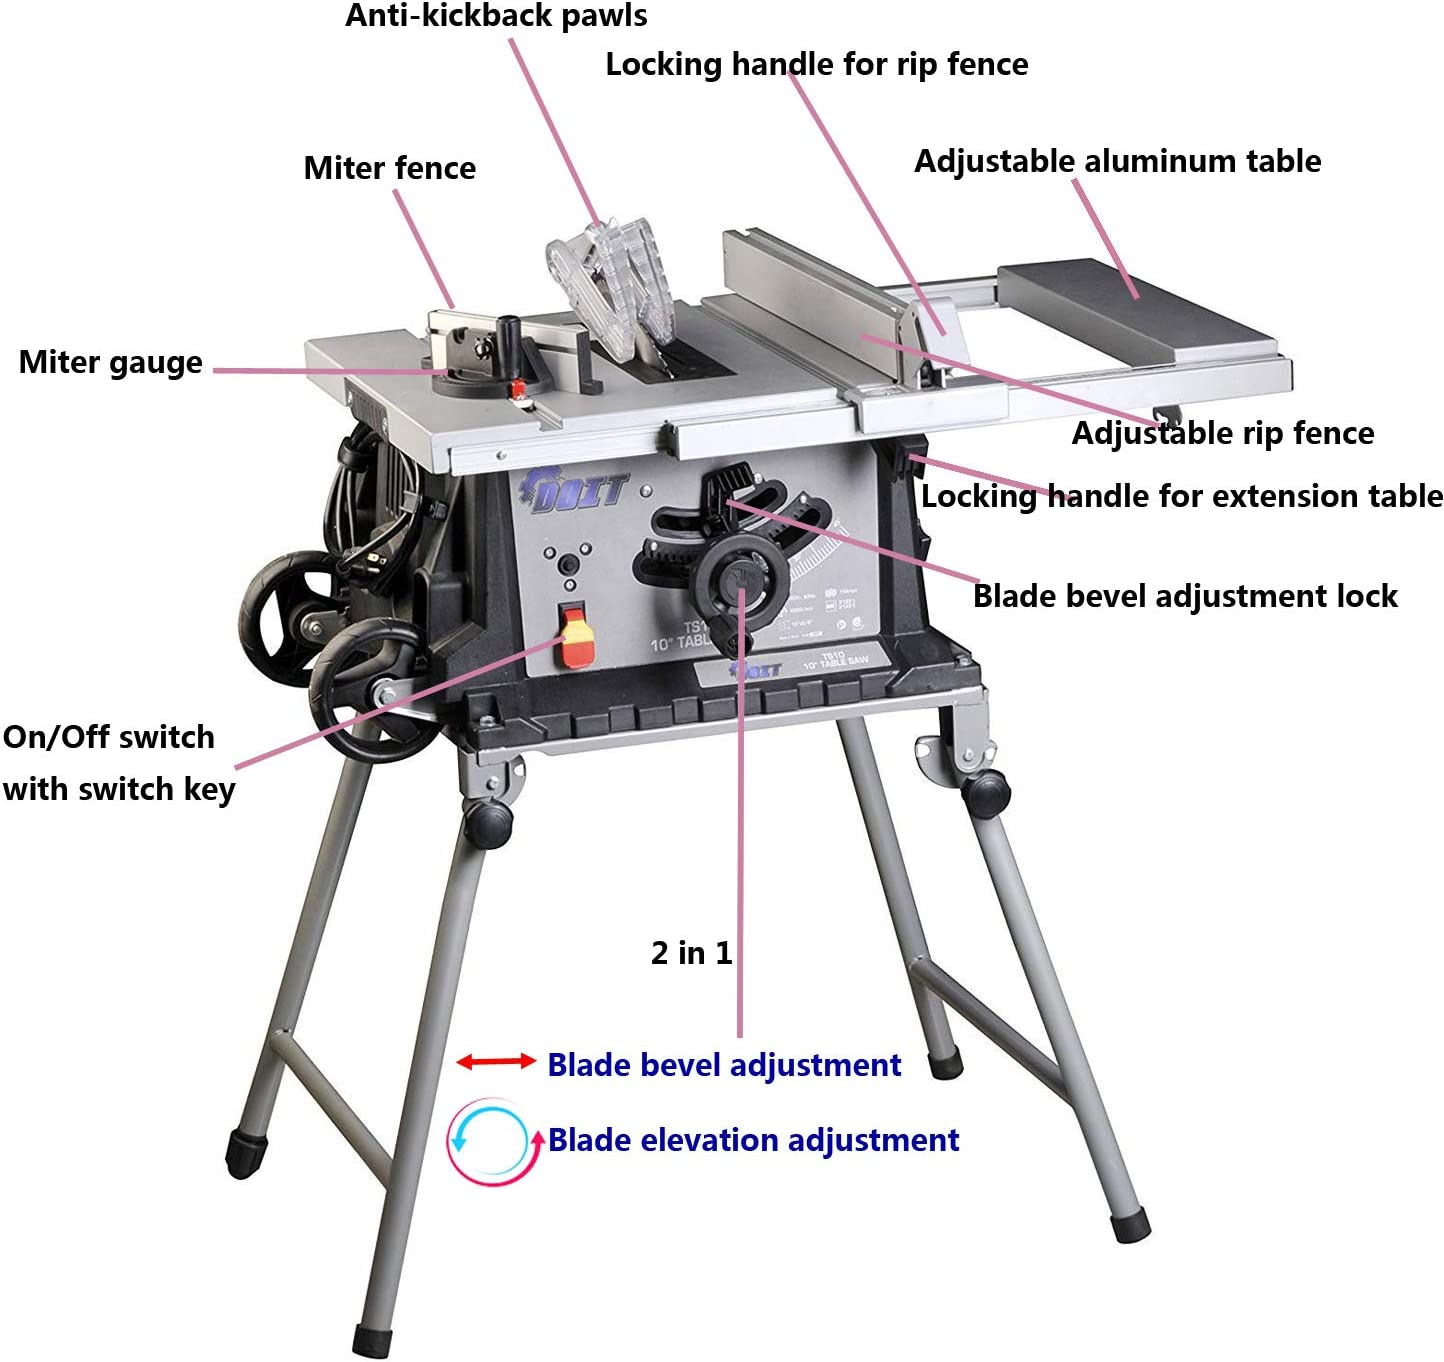 Dobetter DBTS10 Table Saws product image 3